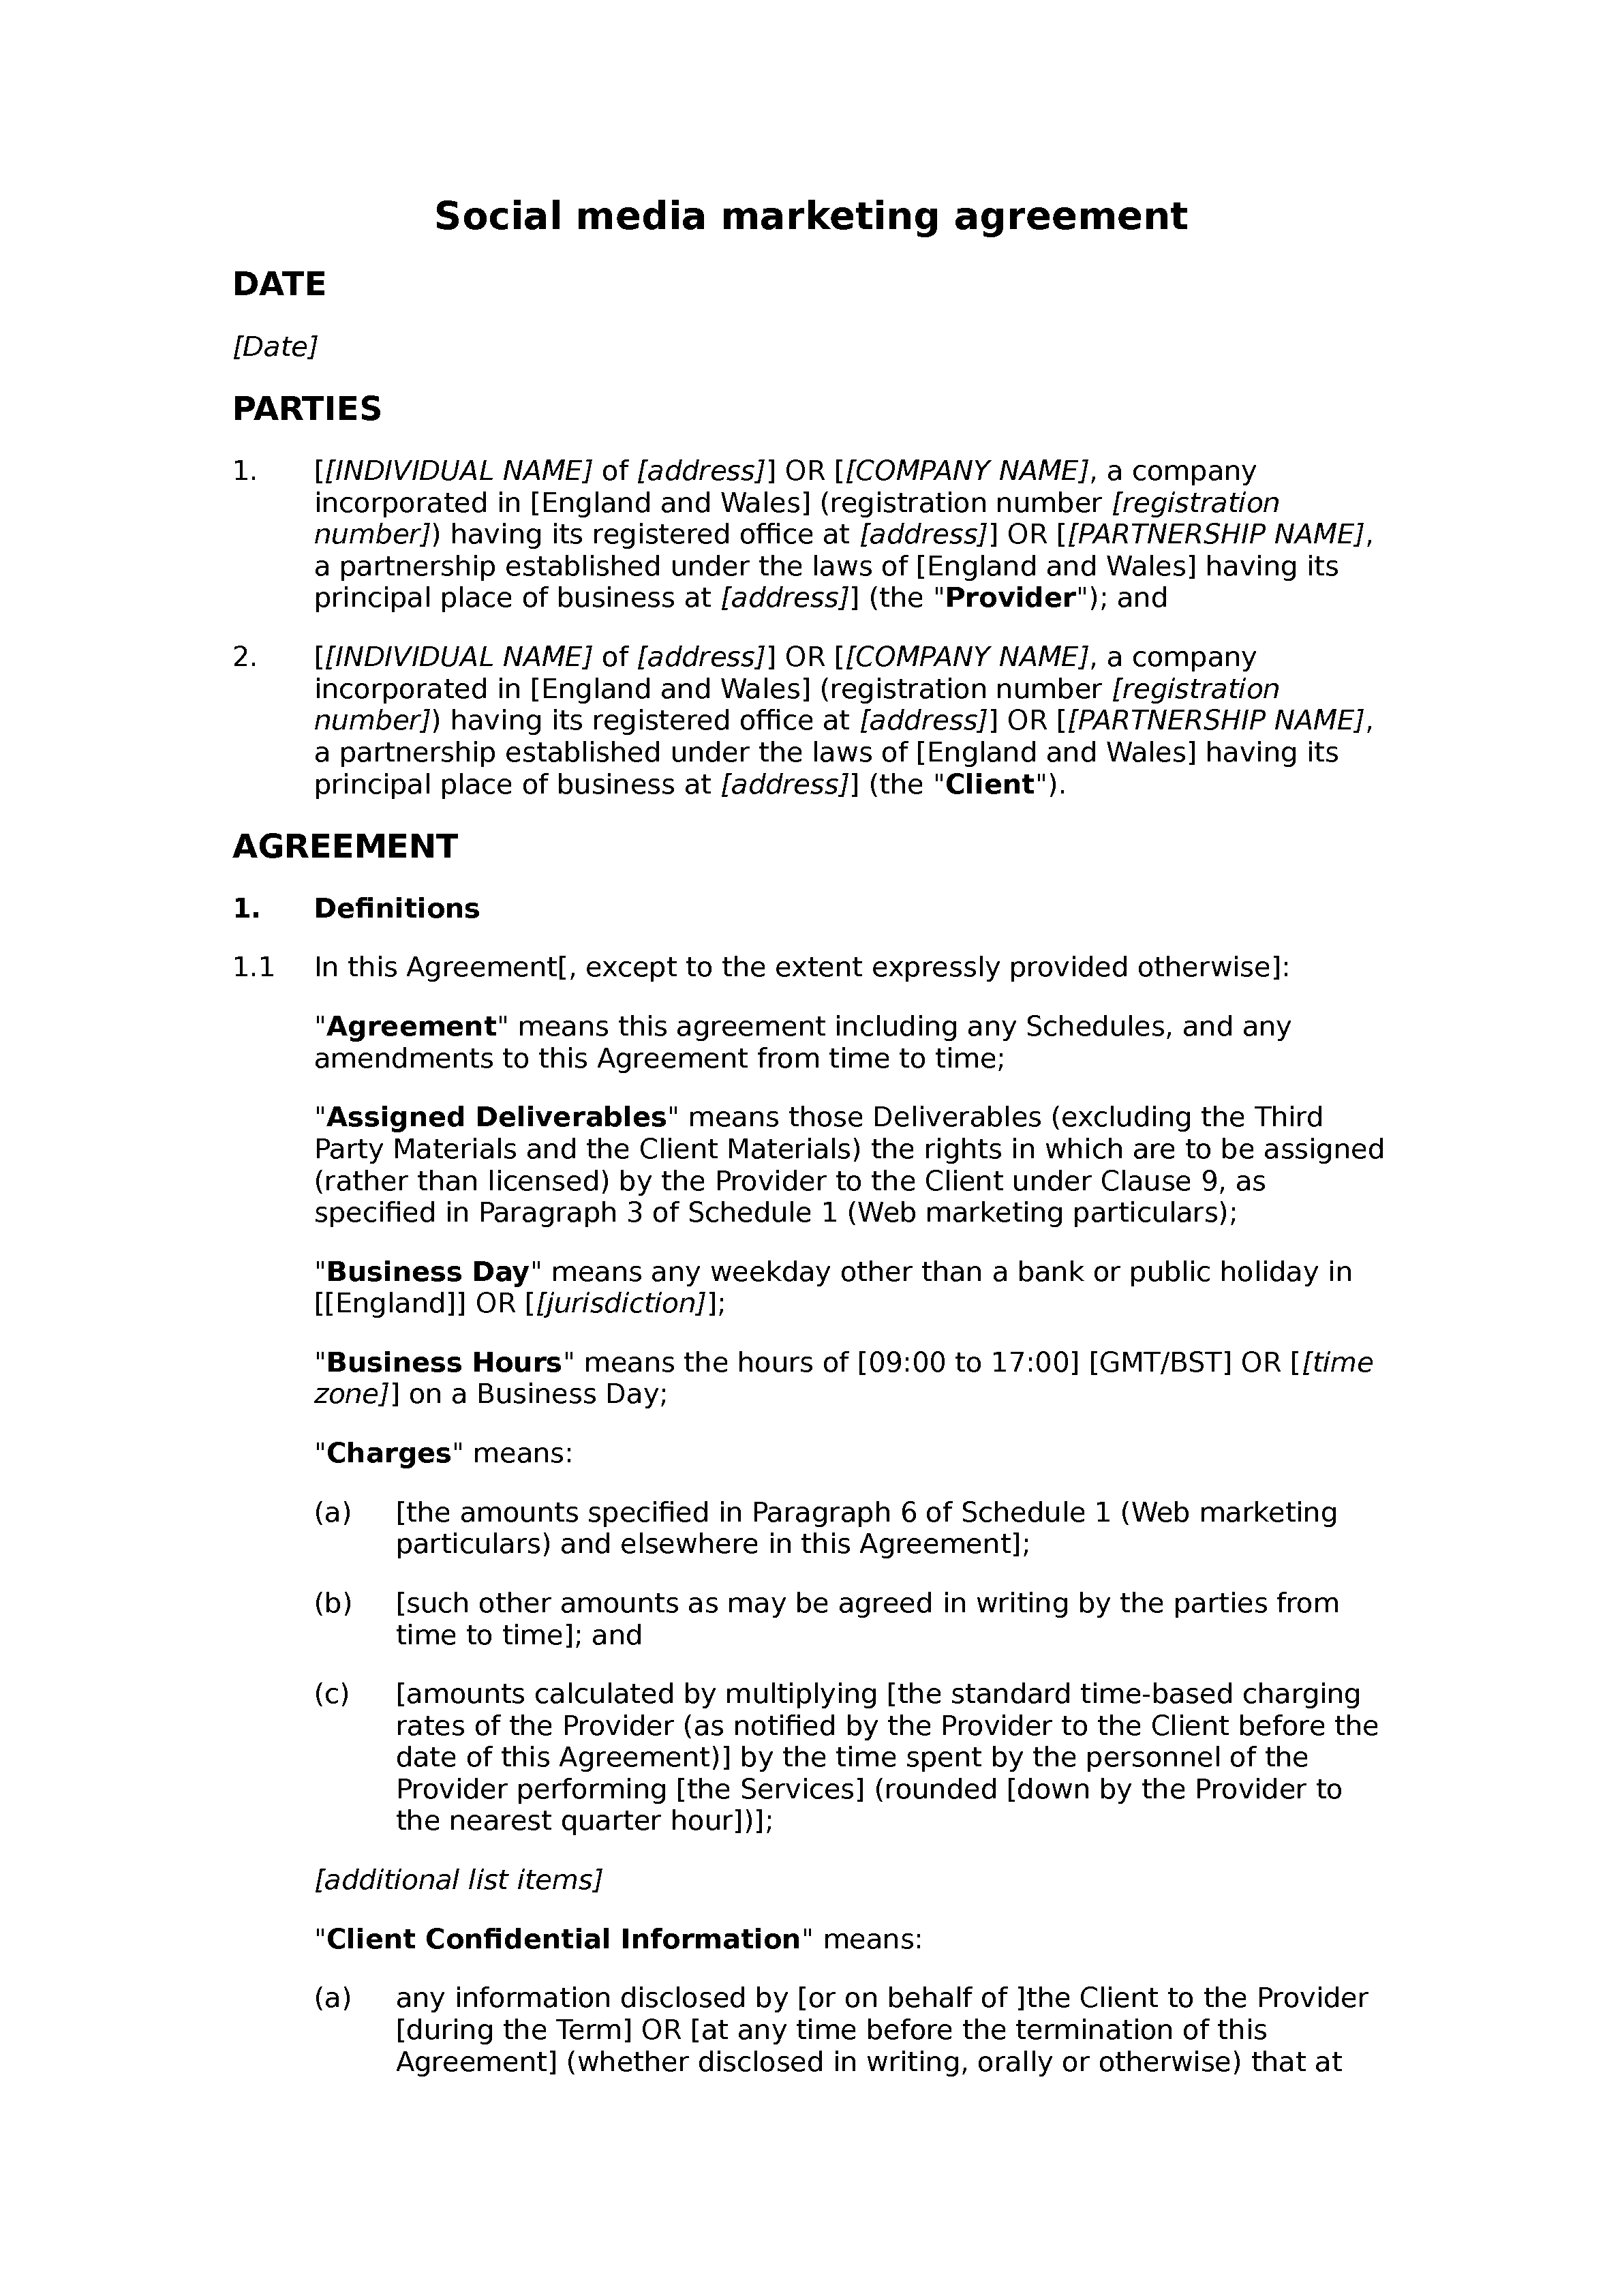 Social Media Marketing Agreement Docular 5162 001 Social Media Marketing  Agreement Co Marketing Agreement Template Business Co Marketing Agreement  Template ...